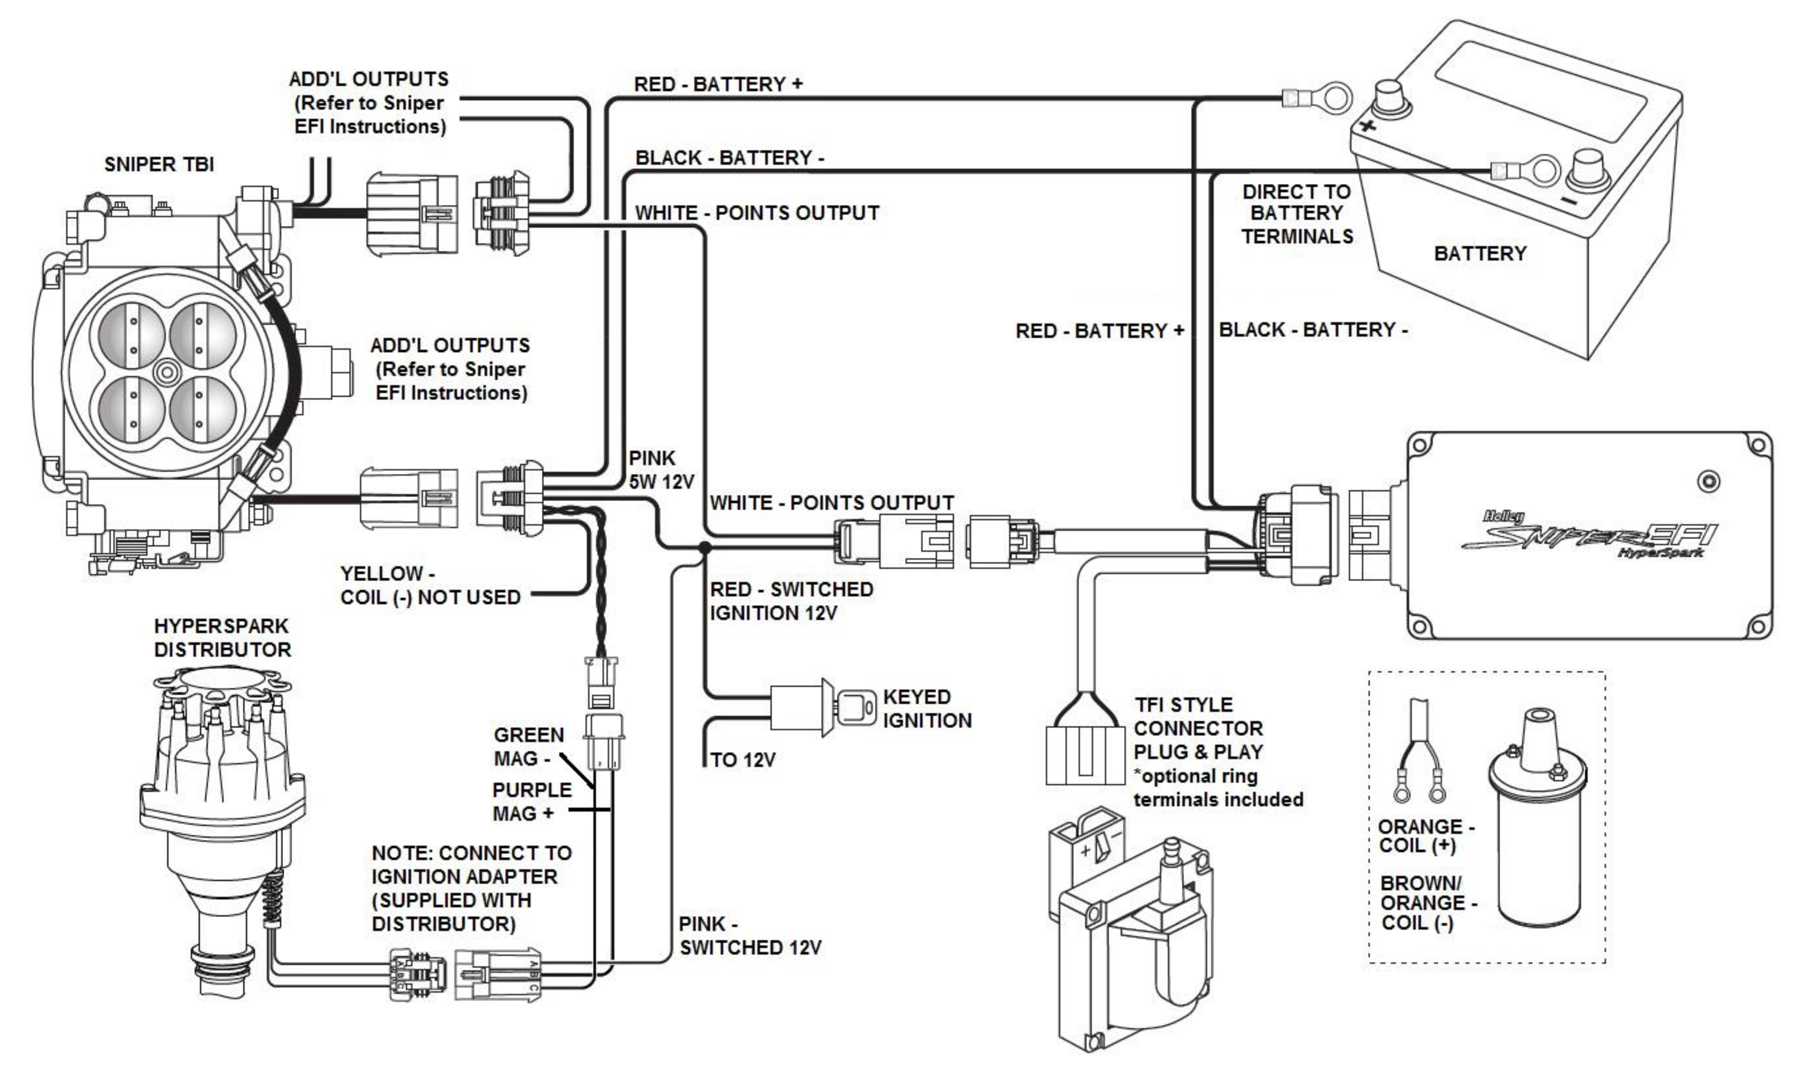 hight resolution of  wiring diagram dissuade you from attempting this install other than the two wires that go directly to the battery and the one that goes to an ignition